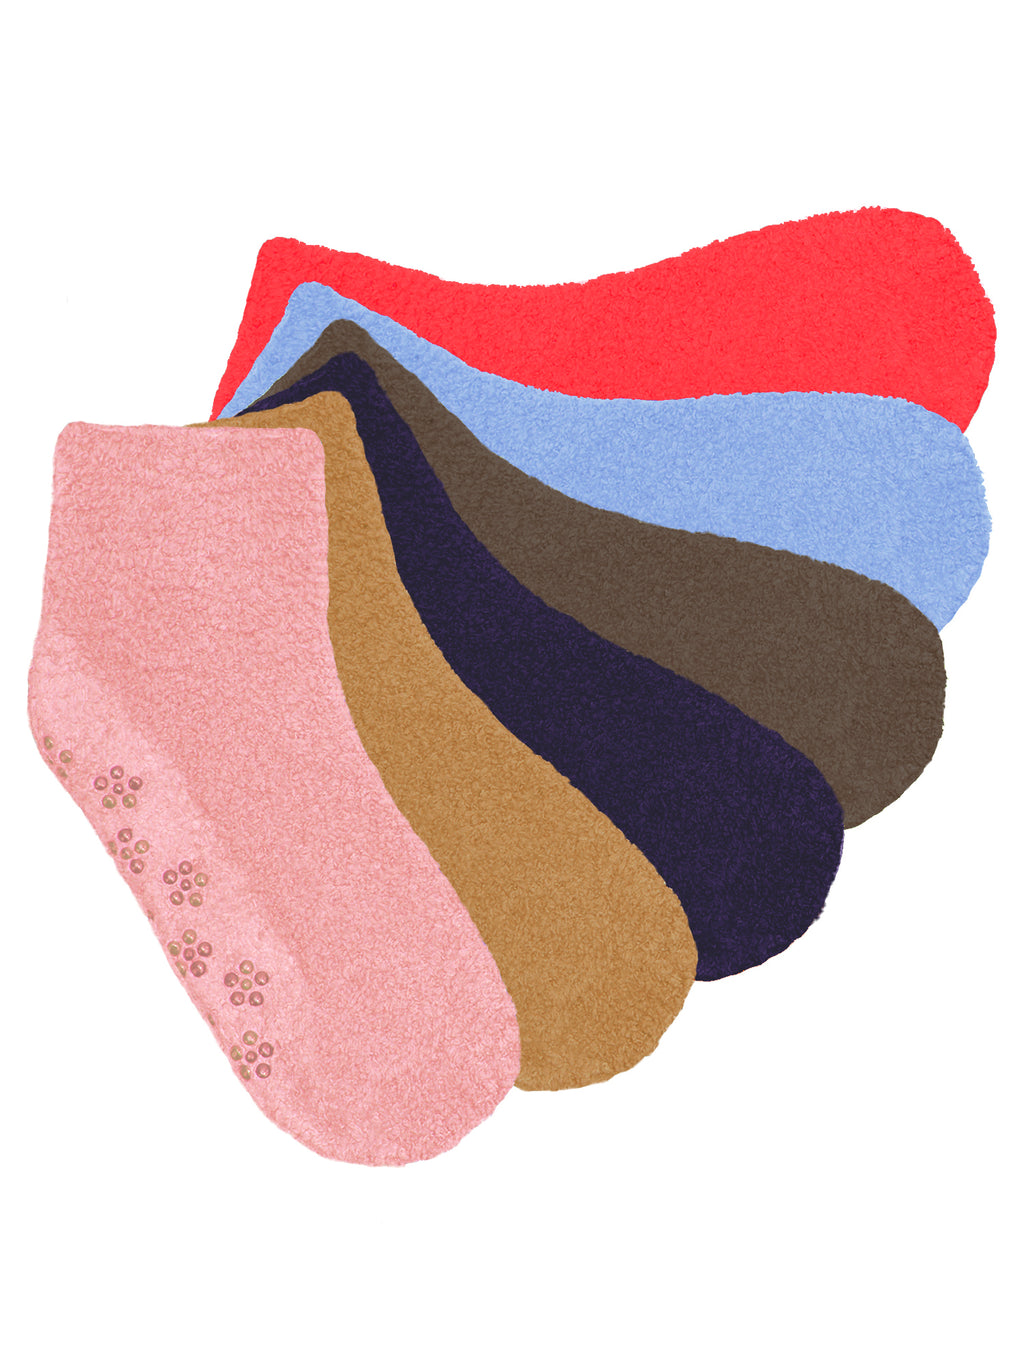 Non Skid Light Colors 6 Pack Fuzzy Socks